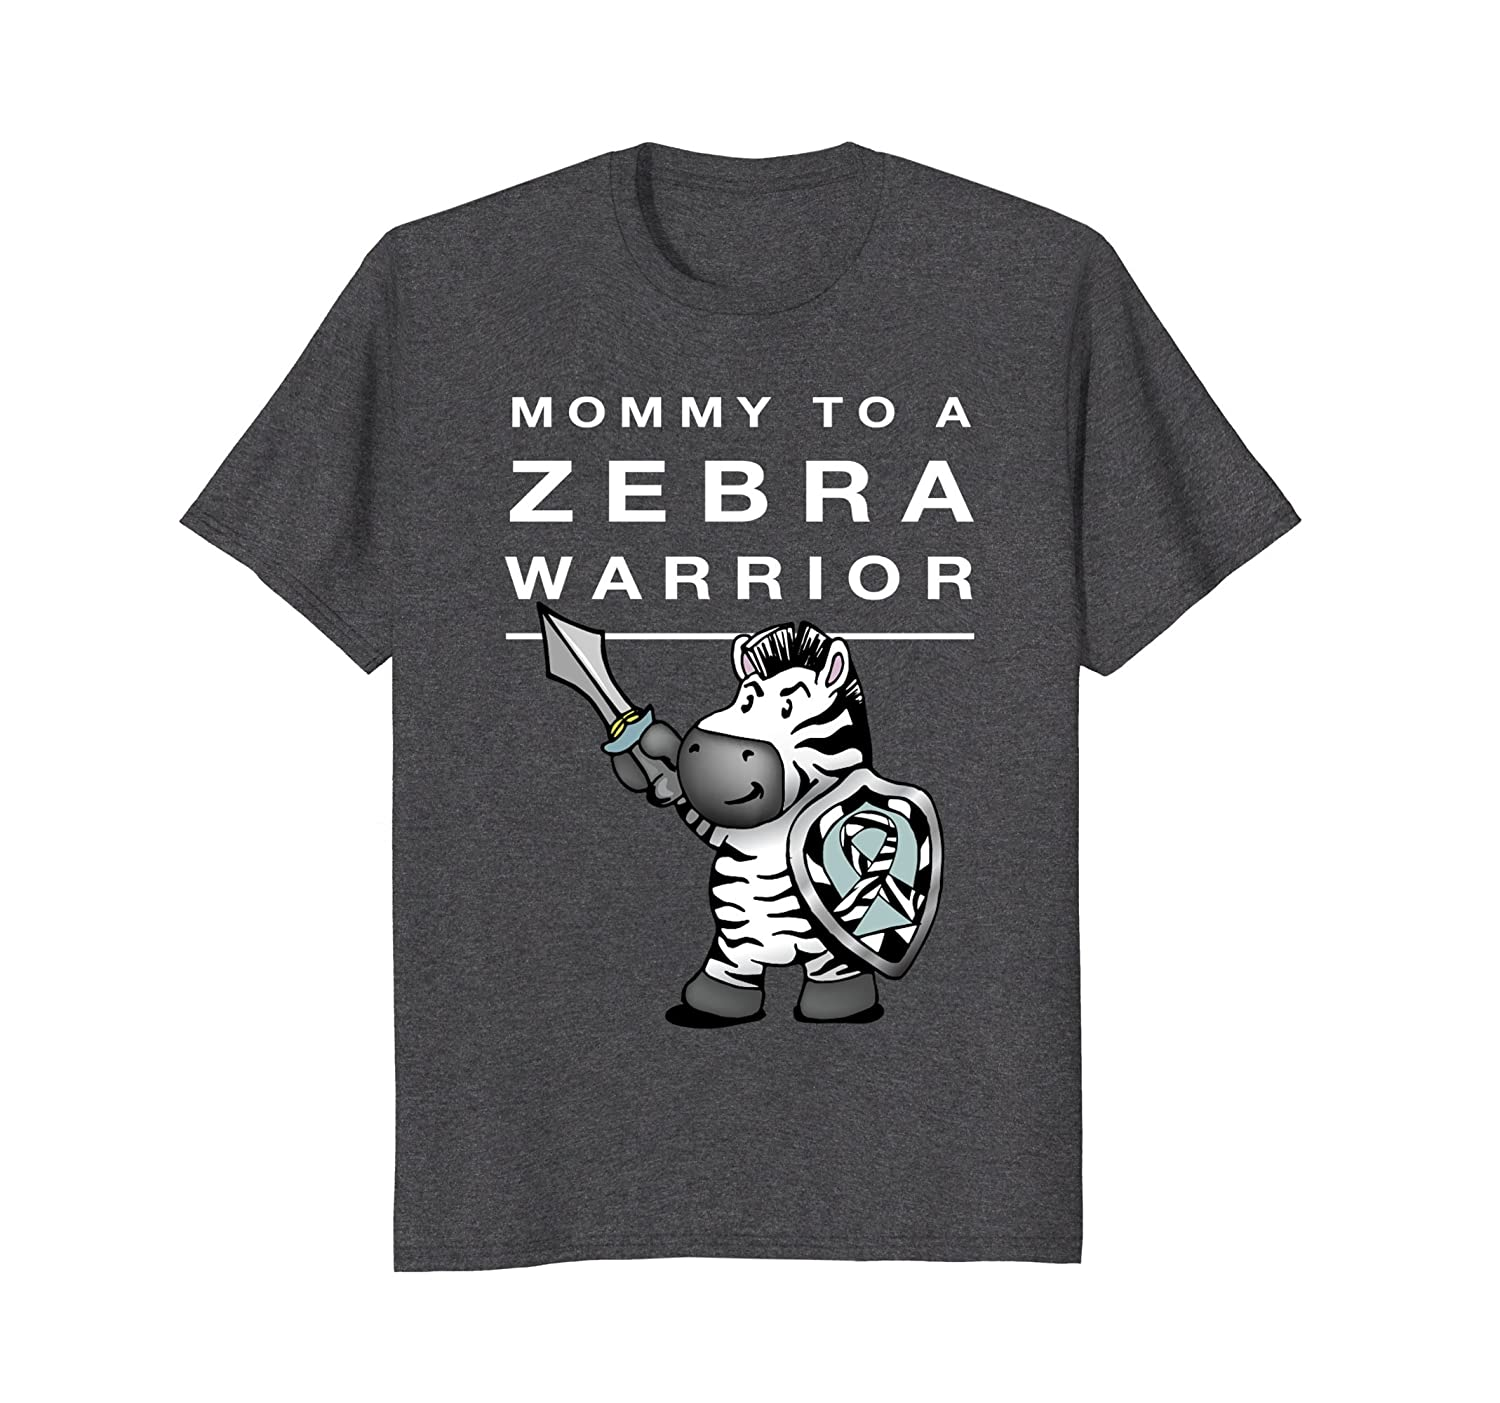 Mommy Zebra Warrior Shirt for Ehlers Danlos Syndrome-AZP